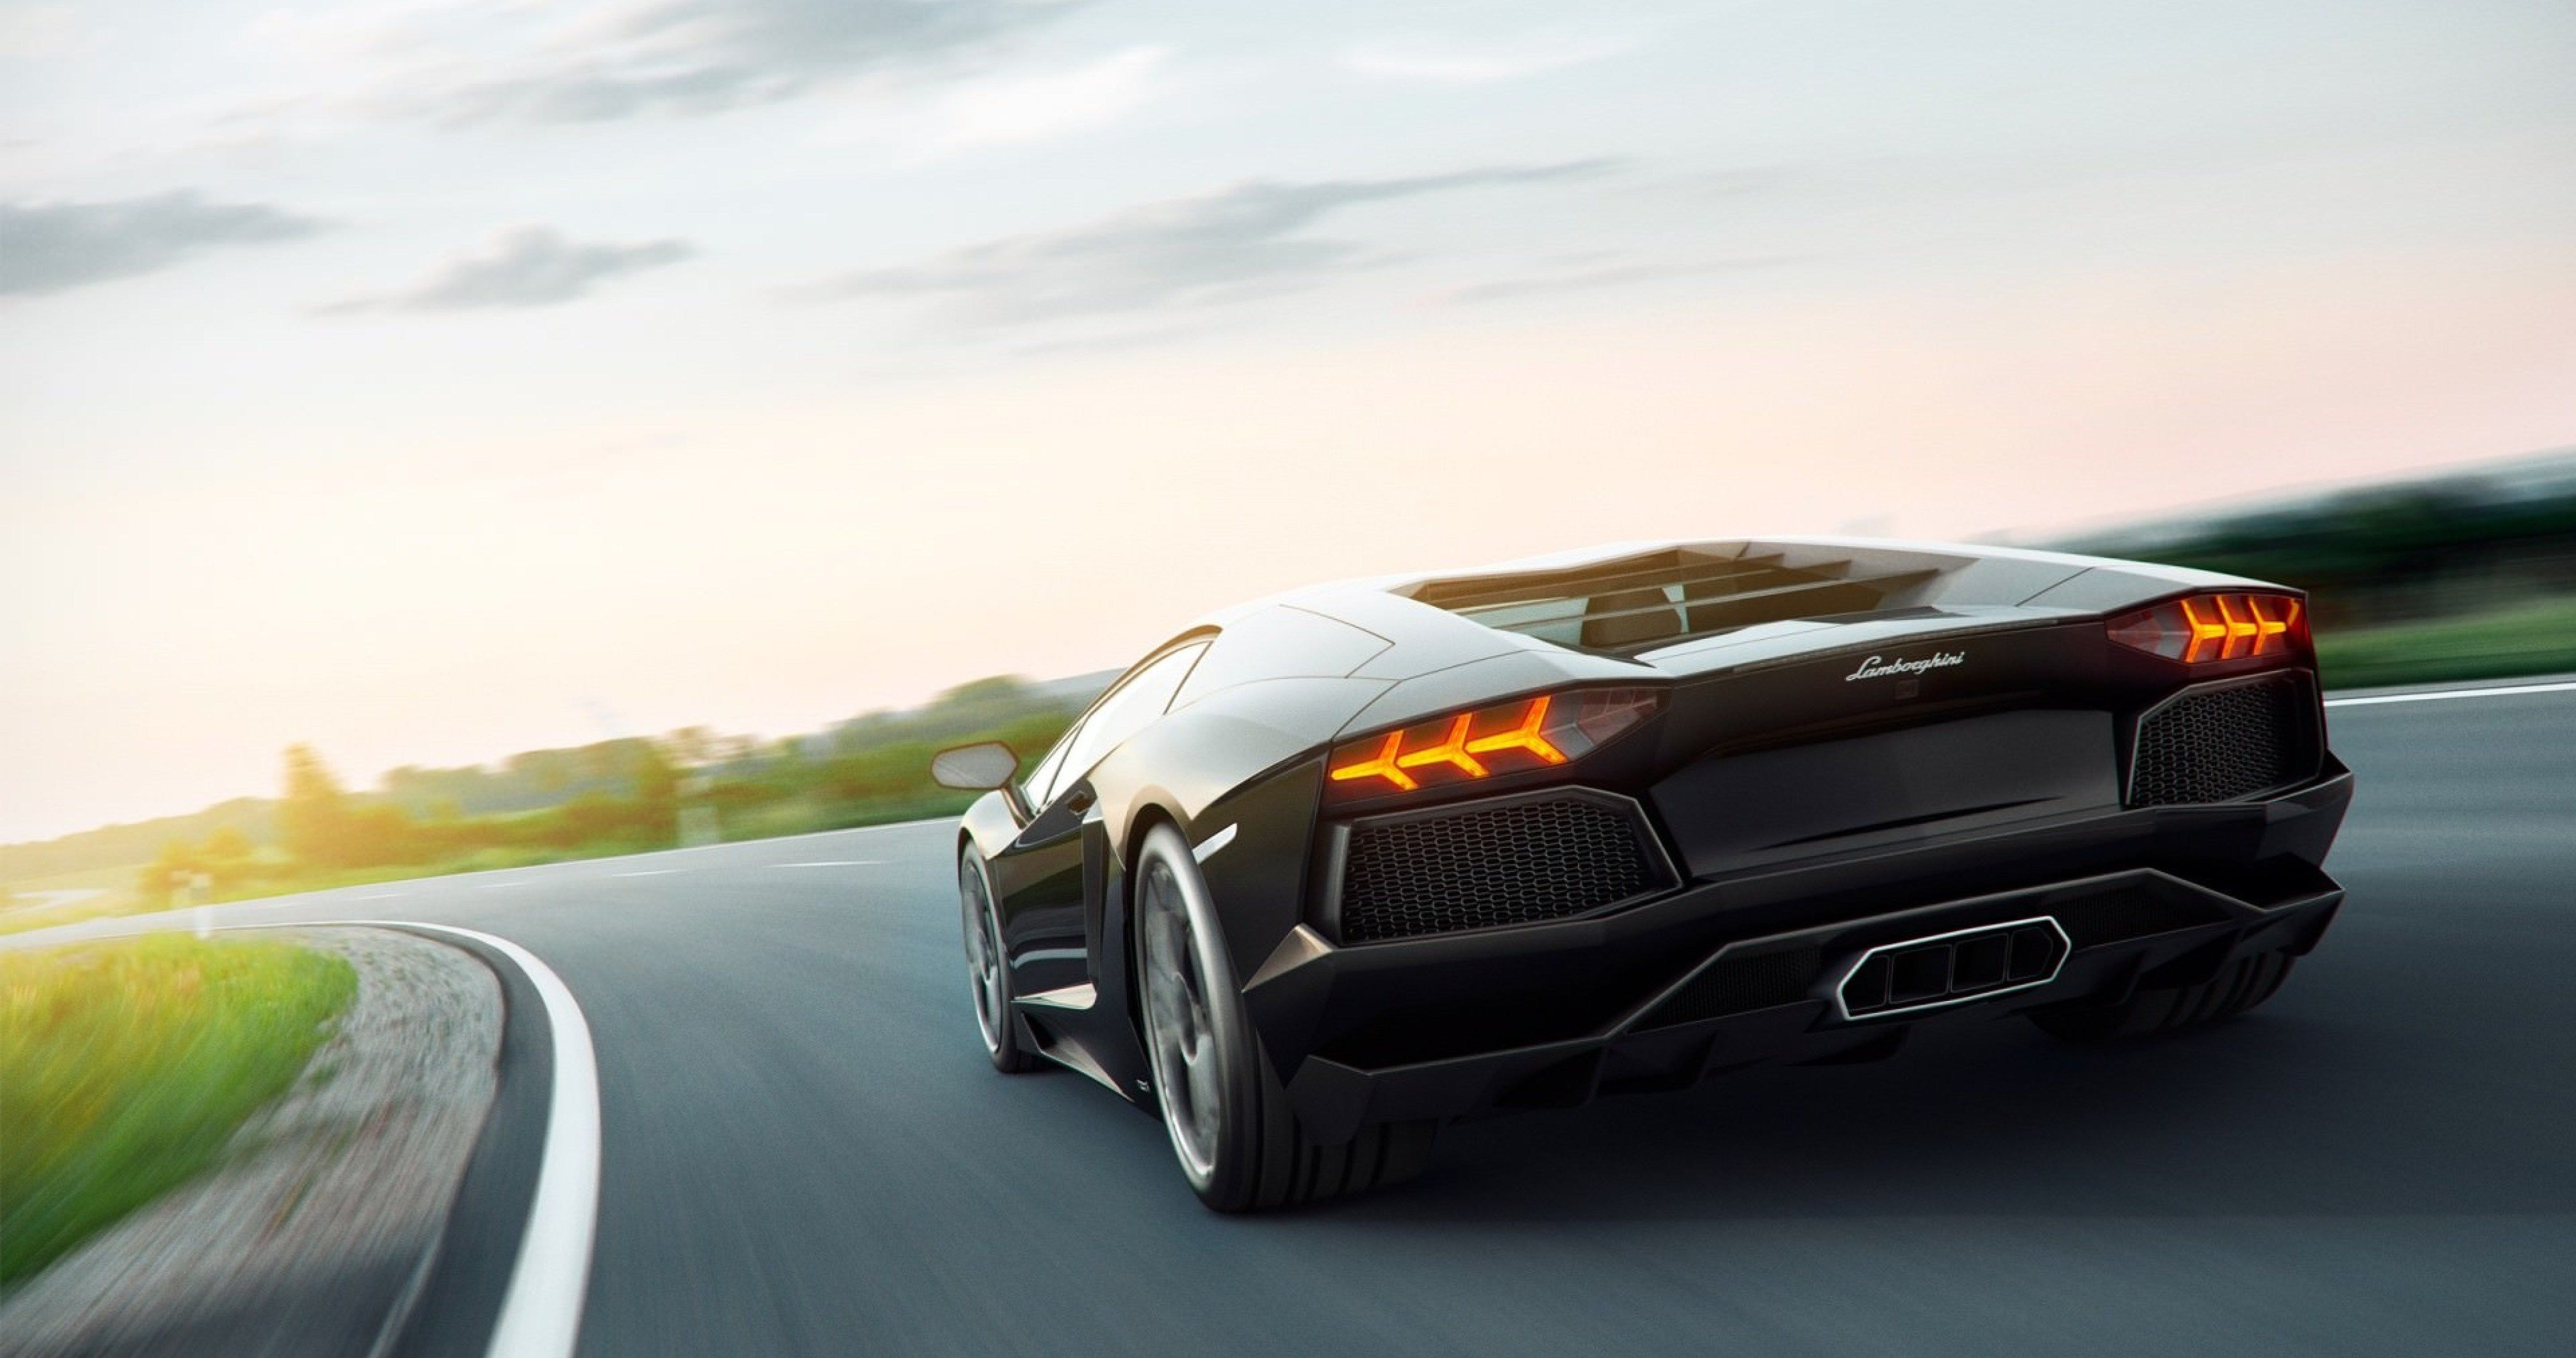 Ever since we saw a more potent variant of the aventador testing at the nurburgring, we've been waiting for. Background 4k Ultra Hd Ultra High Definition Car Wallpaper